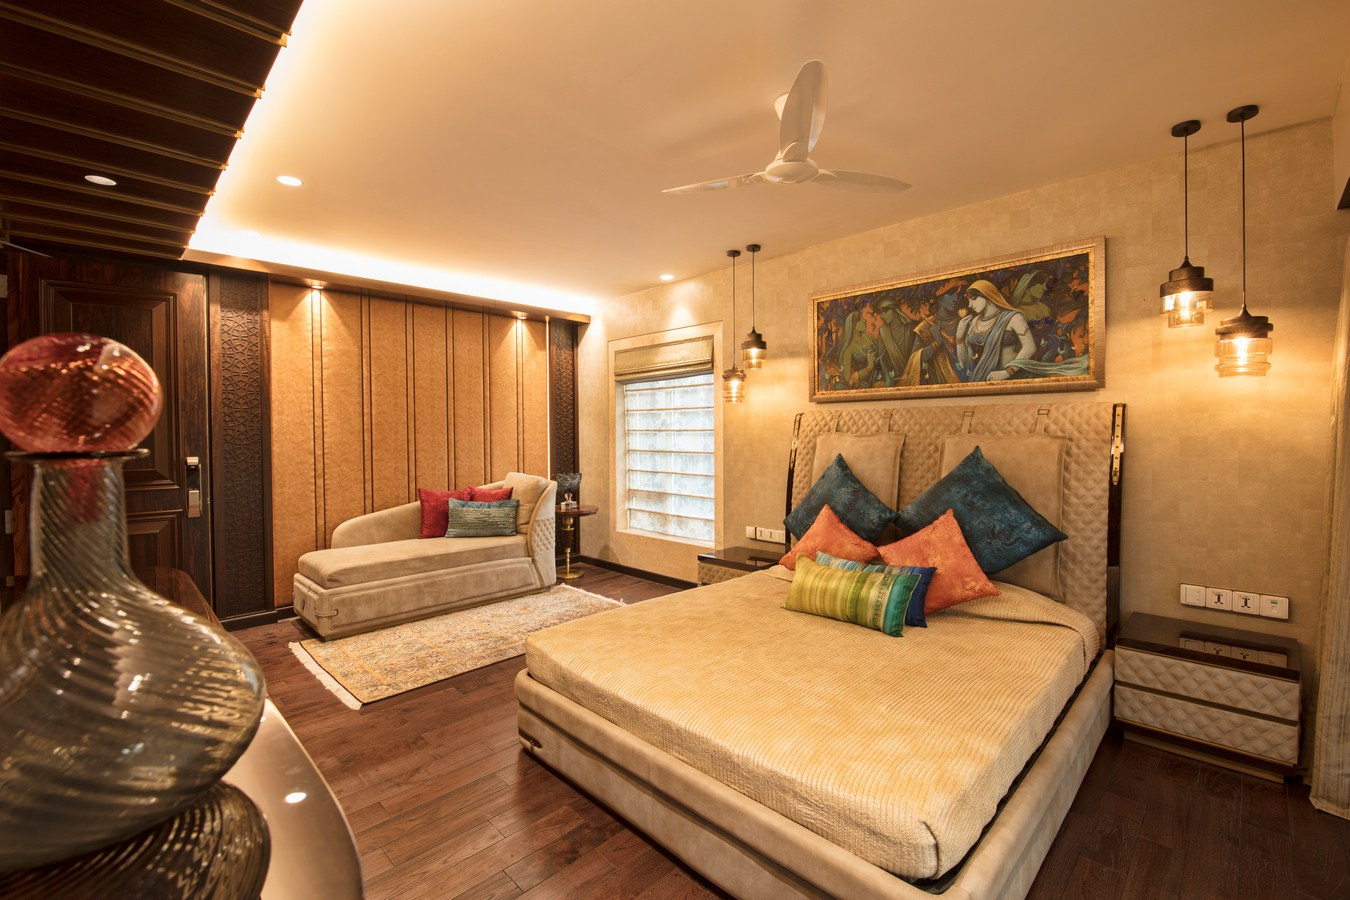 Residence Interiors By Rupandeshah Associates - Sheet4